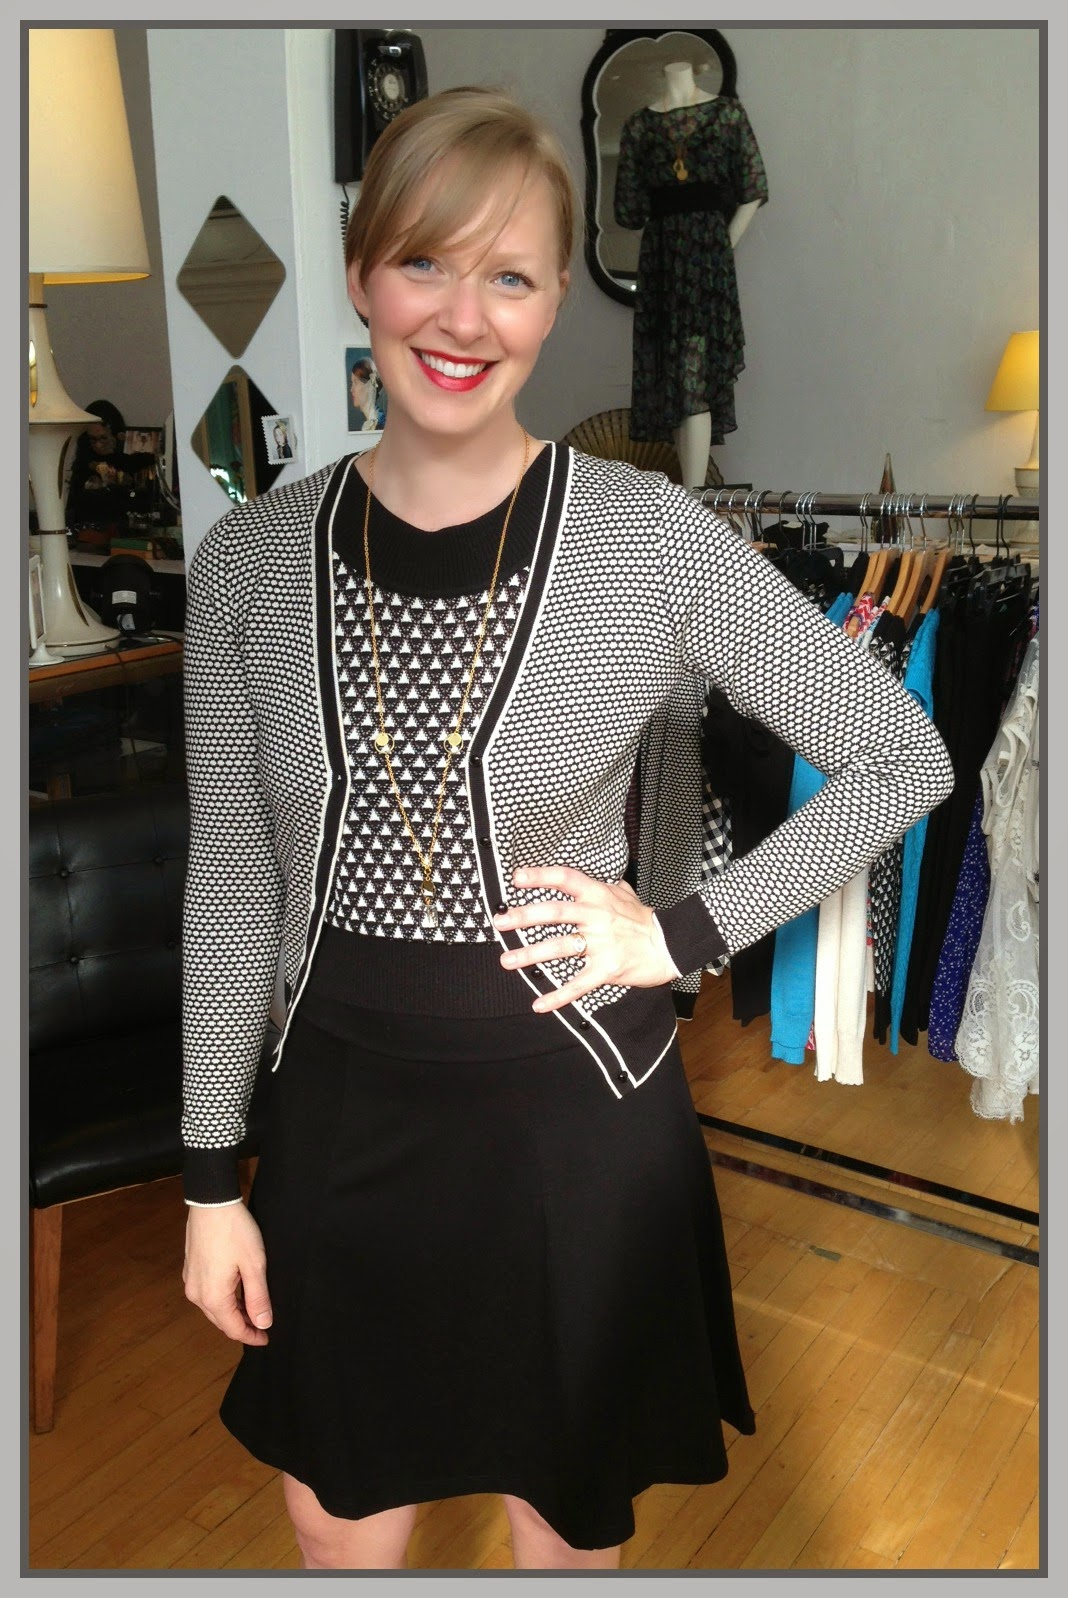 Louie et Lucie jewel boatneck top ($84), beehive v-neck cardigan ($88), wide patch skirt ($68), necklace ($34) by Nicole Weldon Jewelry at Folly